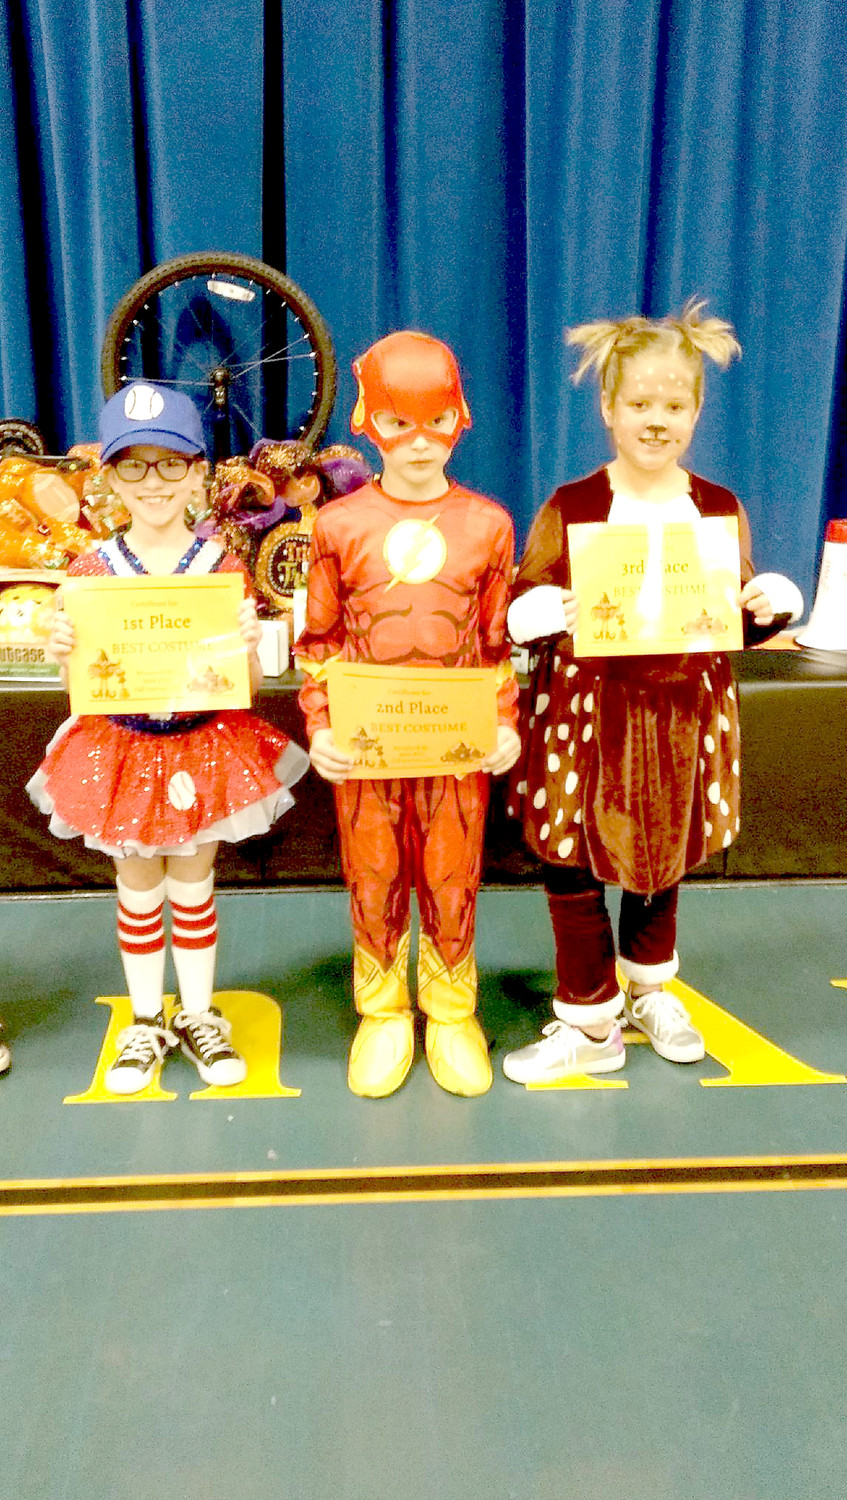 A SOFTBALL STAR, The Flash and a cute furry friend won the costume contest at the Michigan Avenue Elementary Fall Festival.